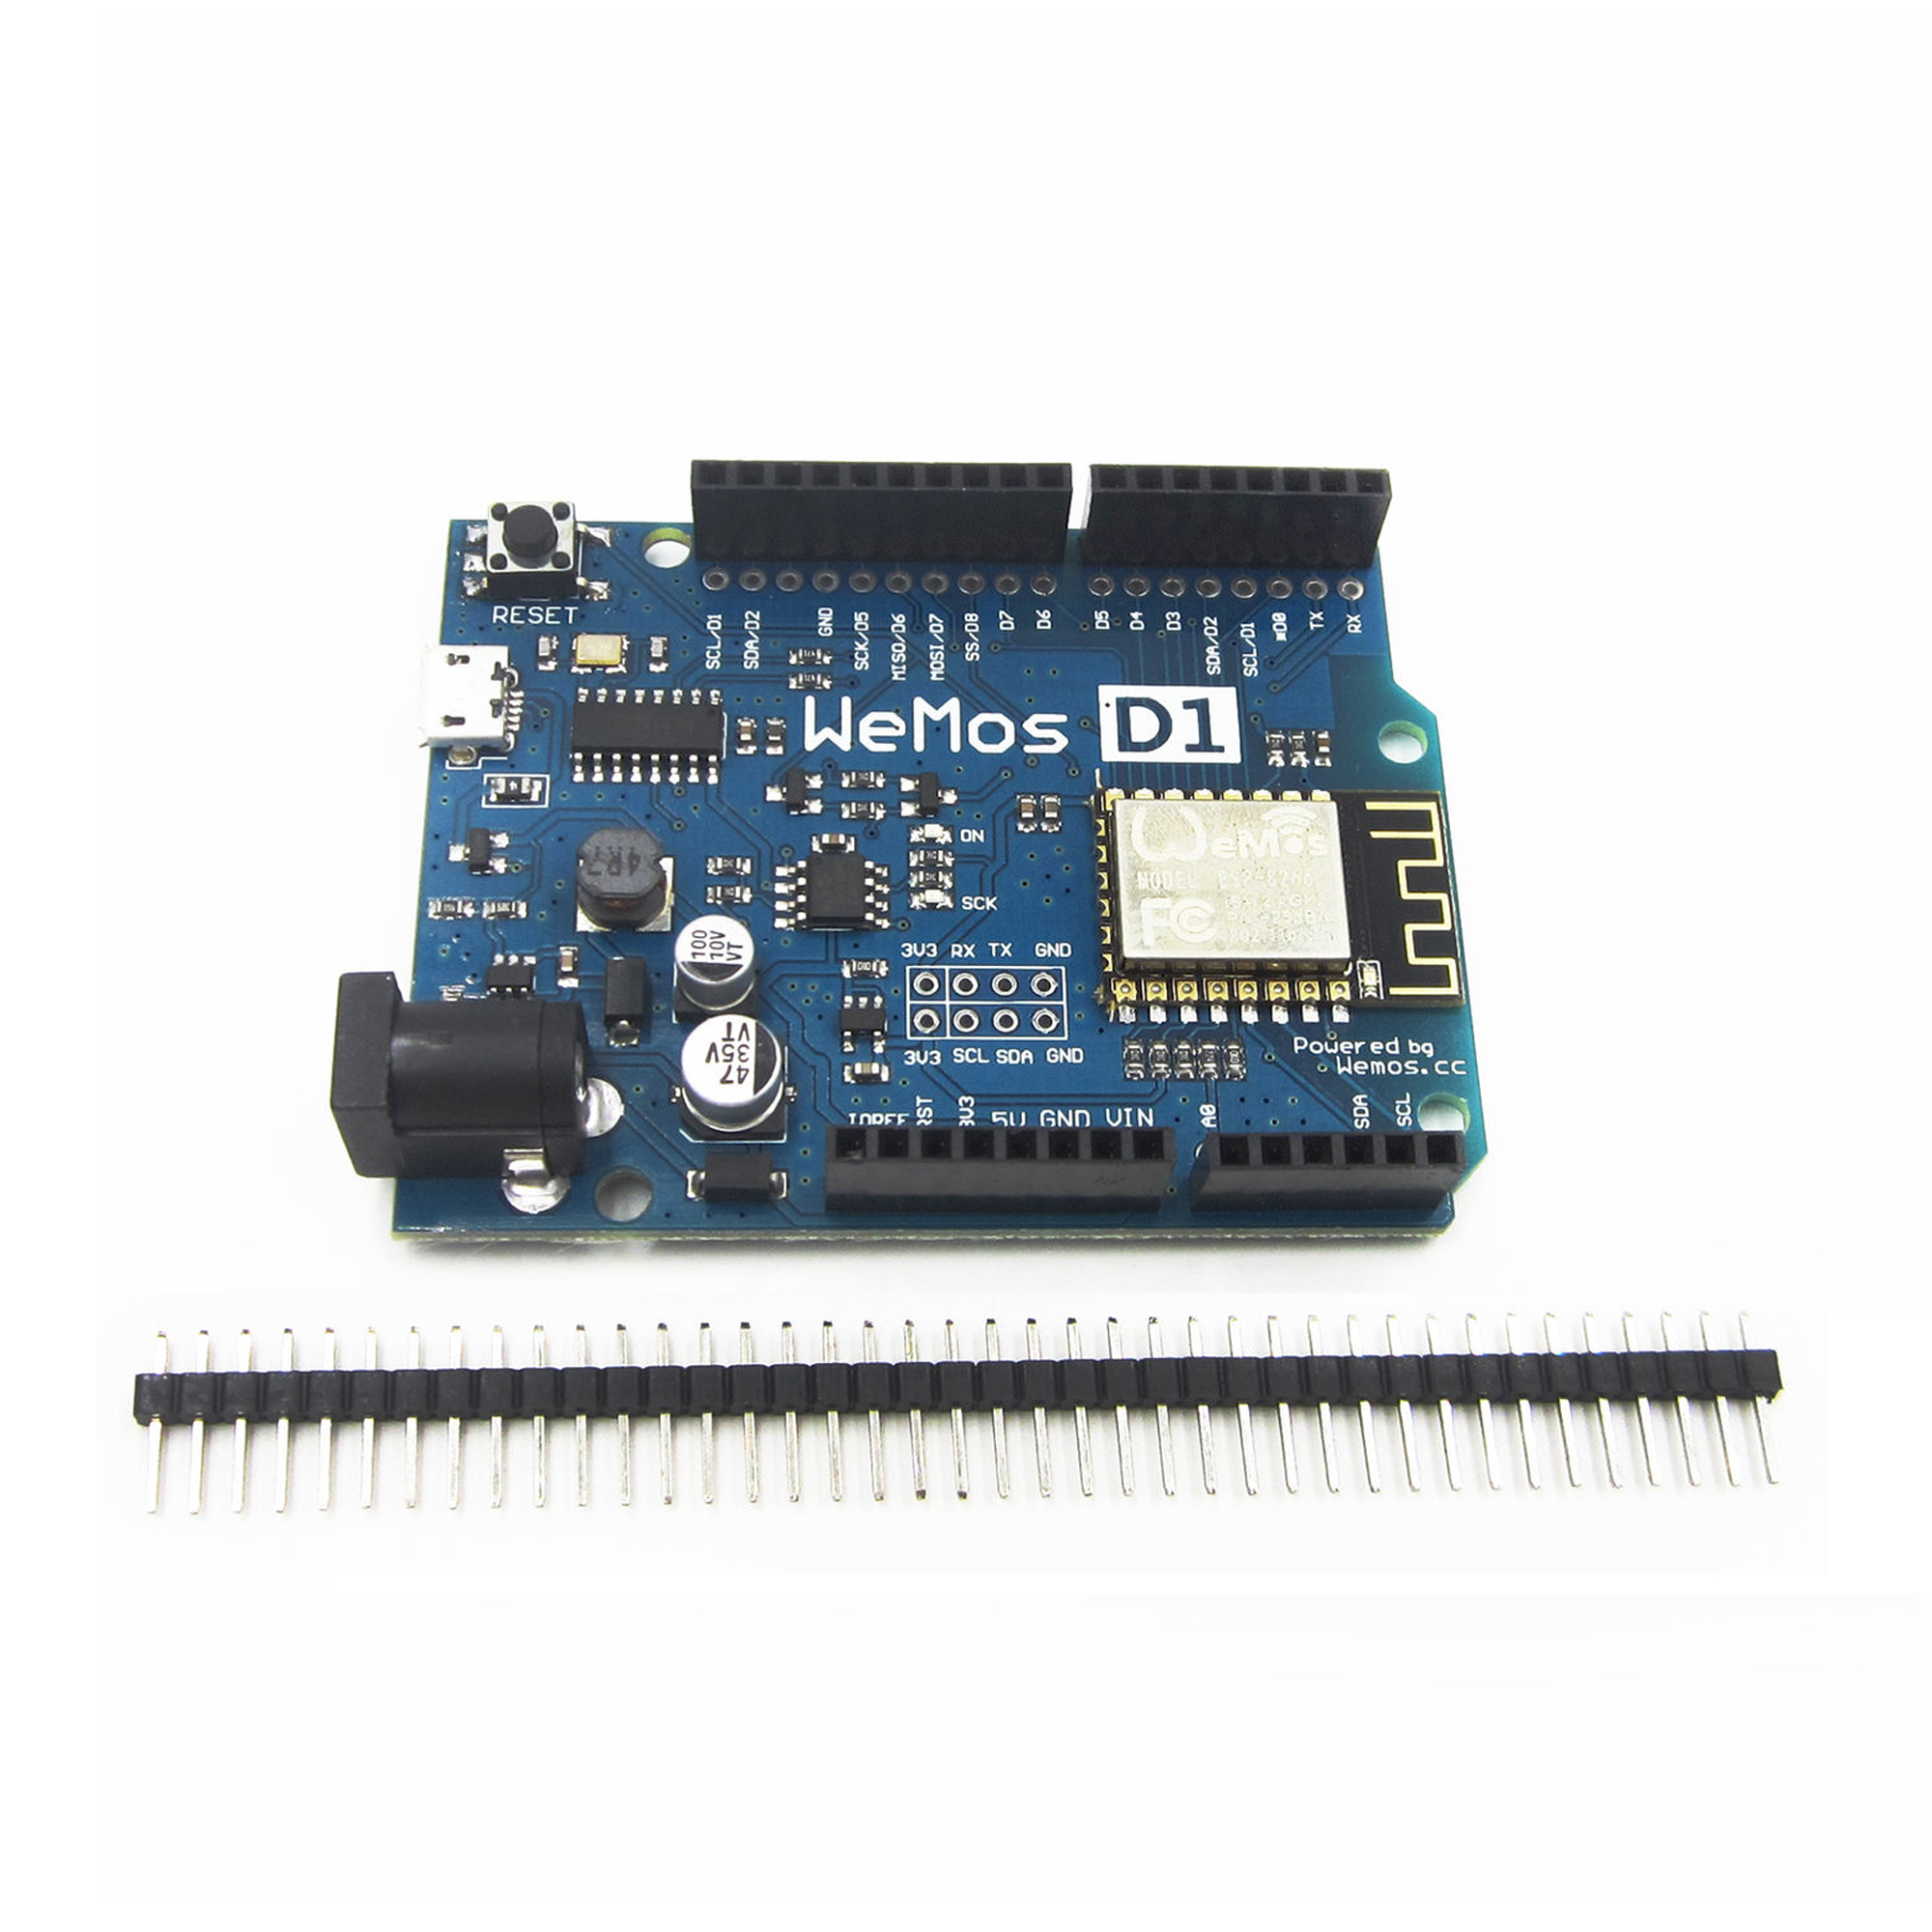 Details about WeMos D1 MINI Pro WiFi Development Board ESP8266 Motherboard  Nodemcu Module US